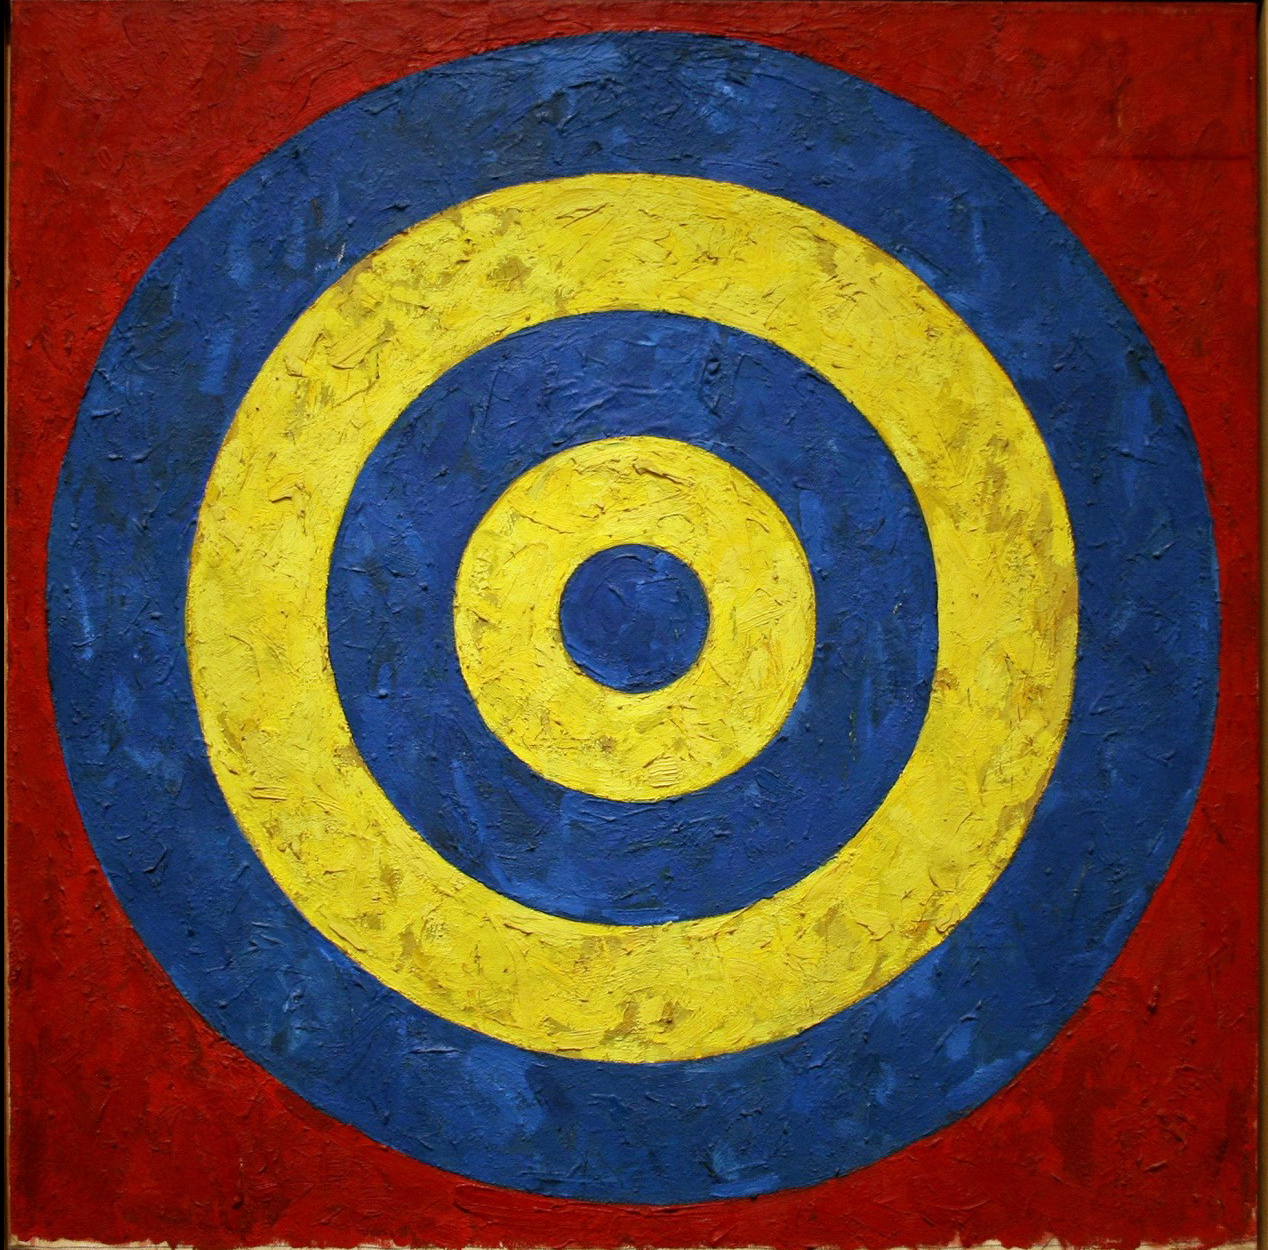 Jasper Johns (1958) Target. Encaustic on newspaper and cloth on canvas. 66 x 66 c